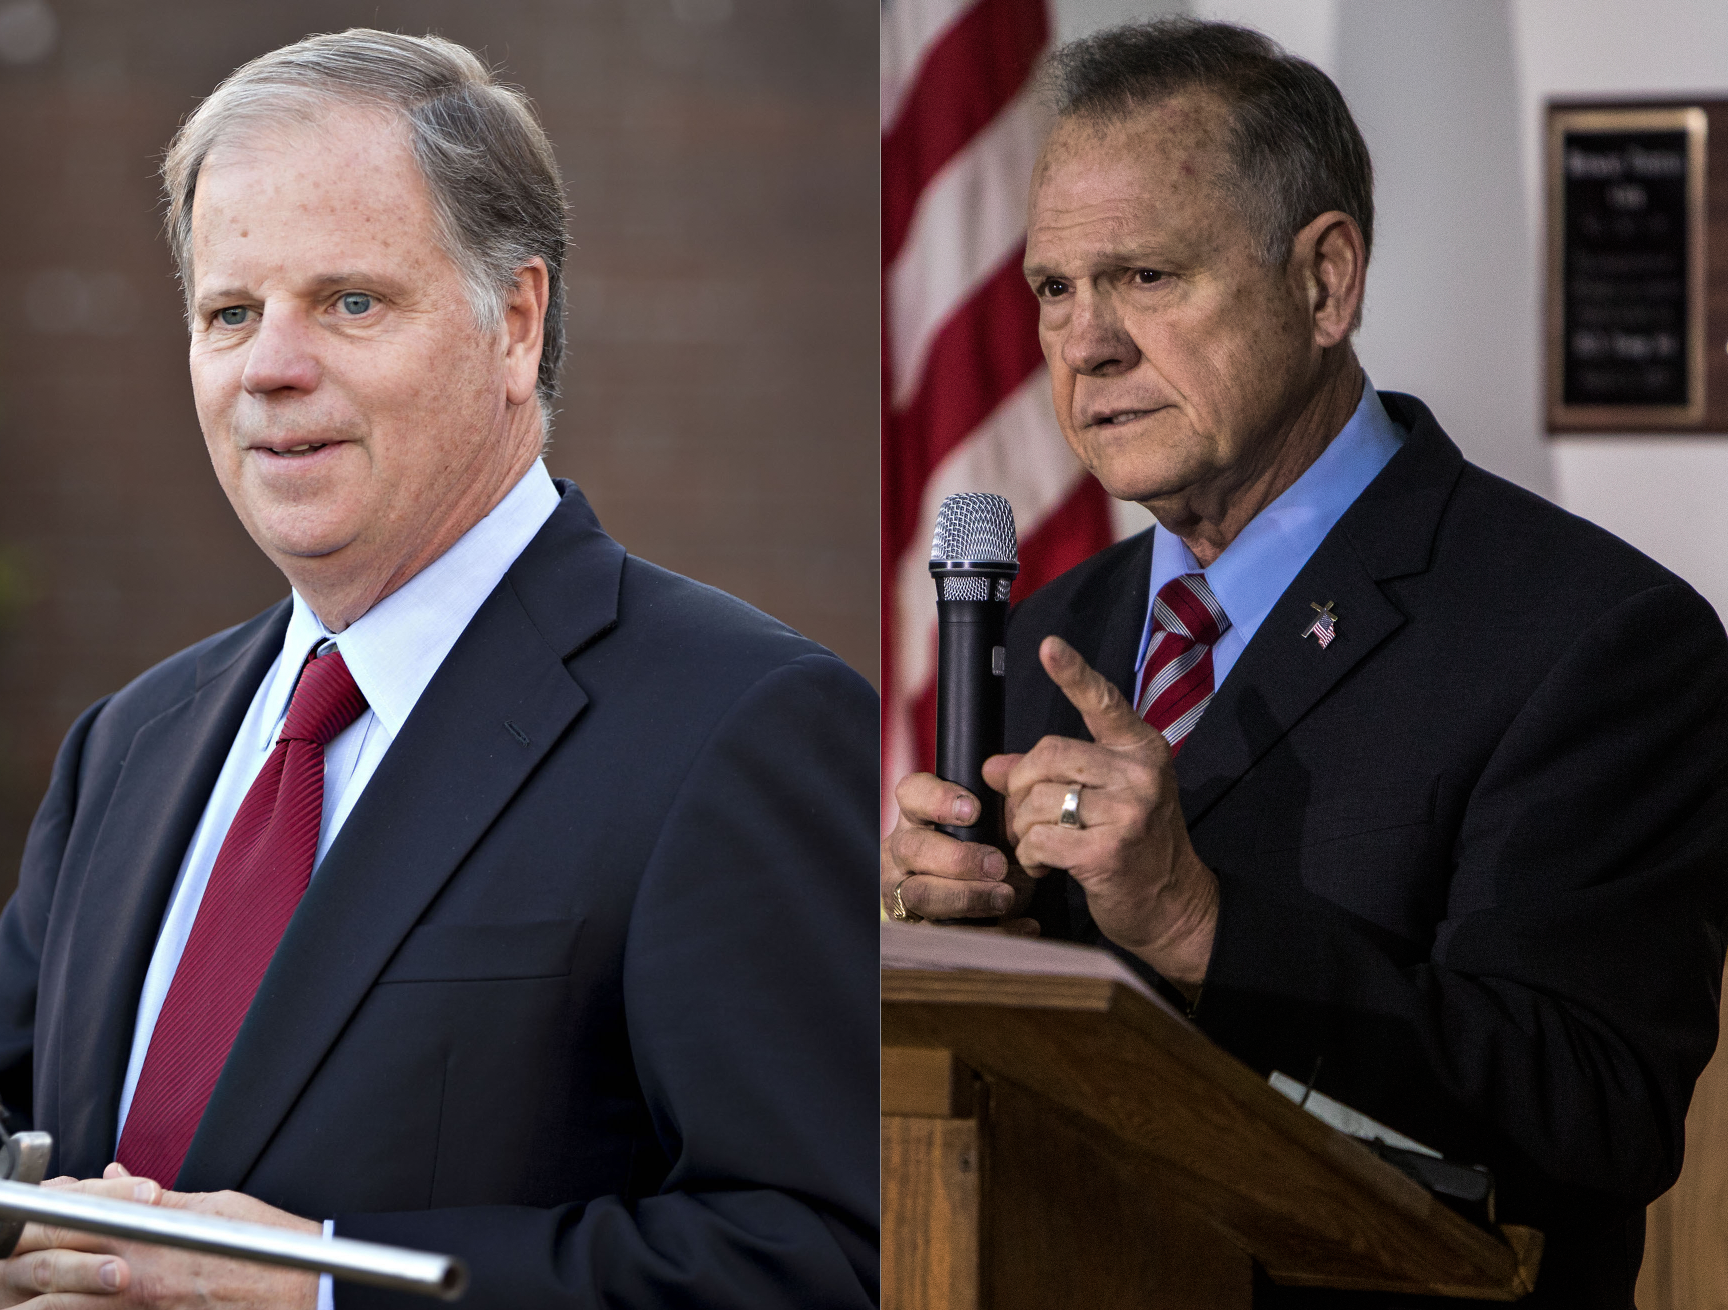 U.S. Senate candidates from Alabama, Doug Jones (D), left, and Roy Moore (R)